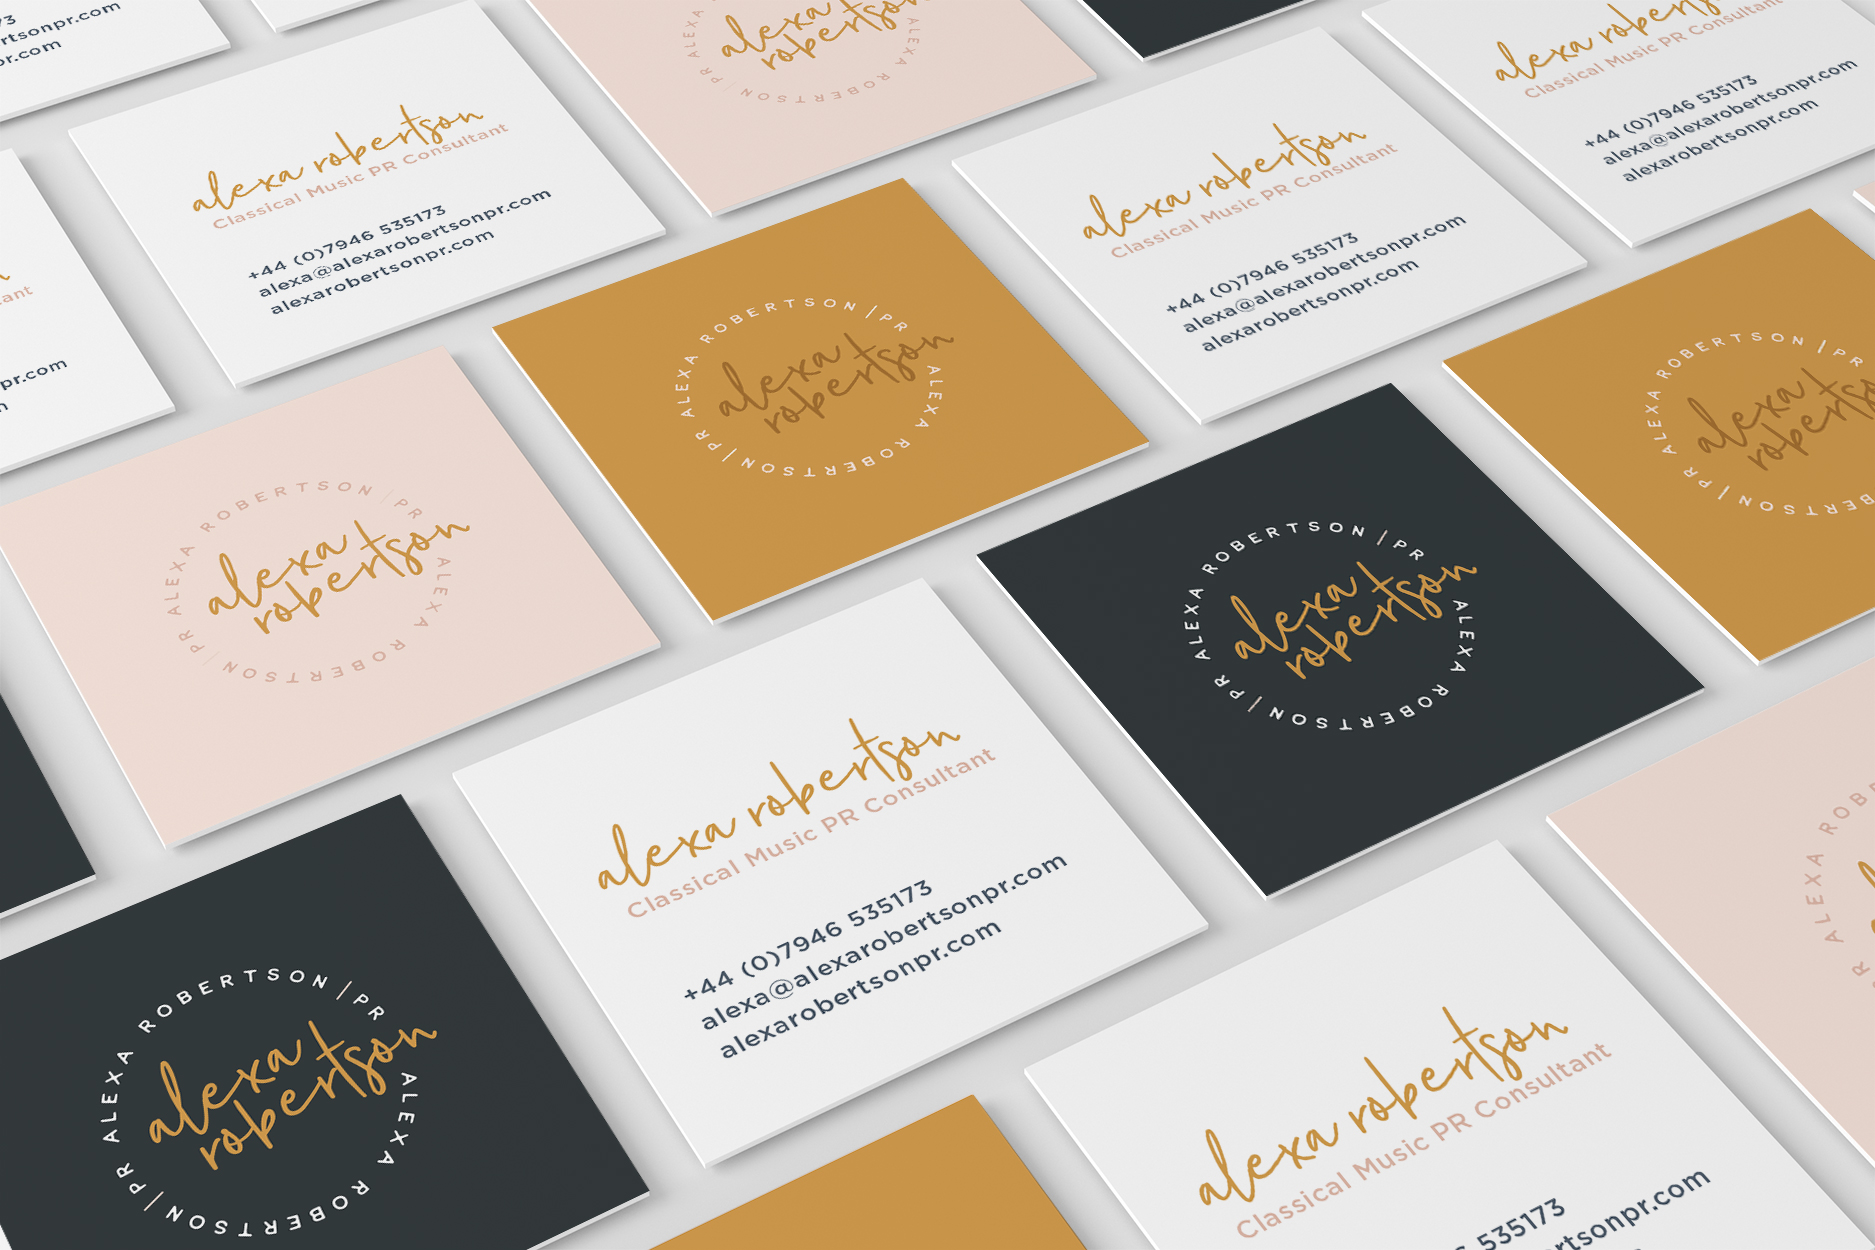 Square business cards with a variation of designs for Alexa Robertson, freelance PR specialising in the classical music industry - Designed by Wiltshire-based graphic designer, Kaye Huett